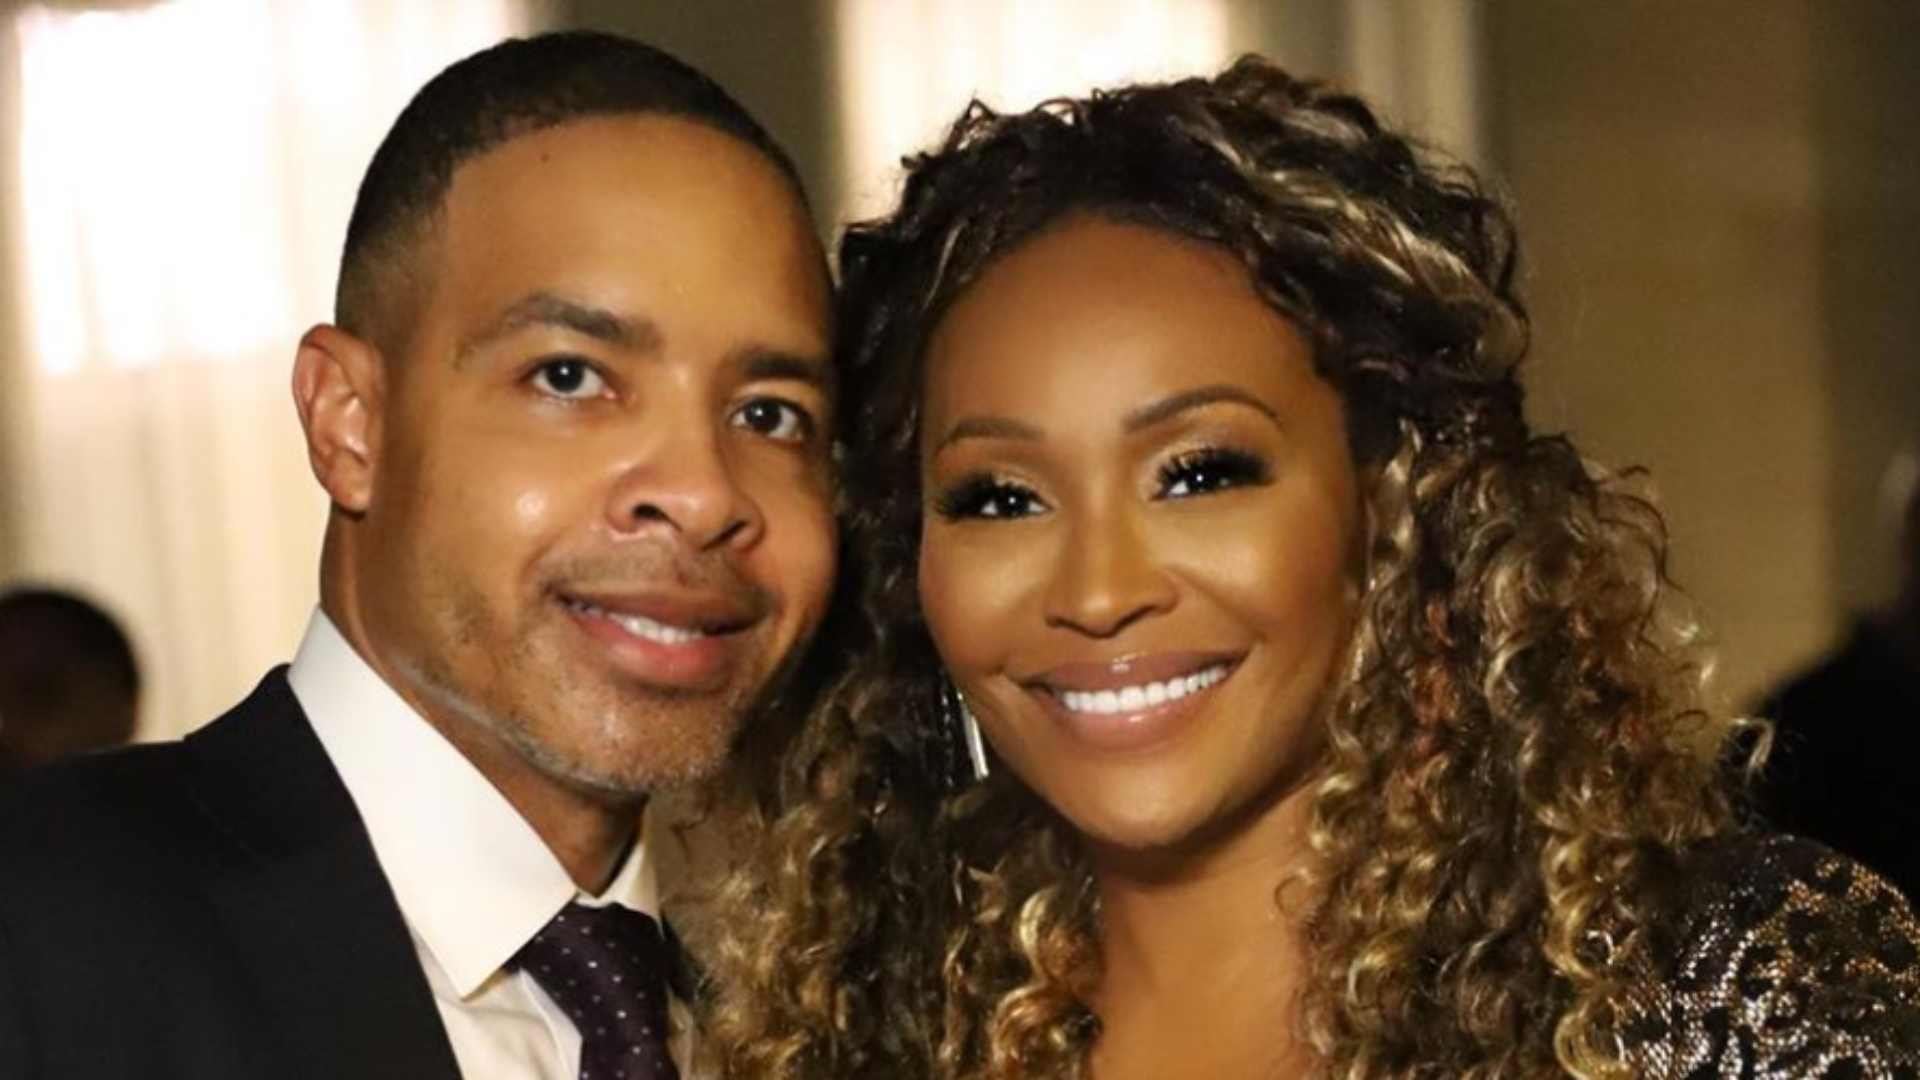 cynthia-bailey-tells-fans-the-latest-rhoa-episode-had-her-emotional